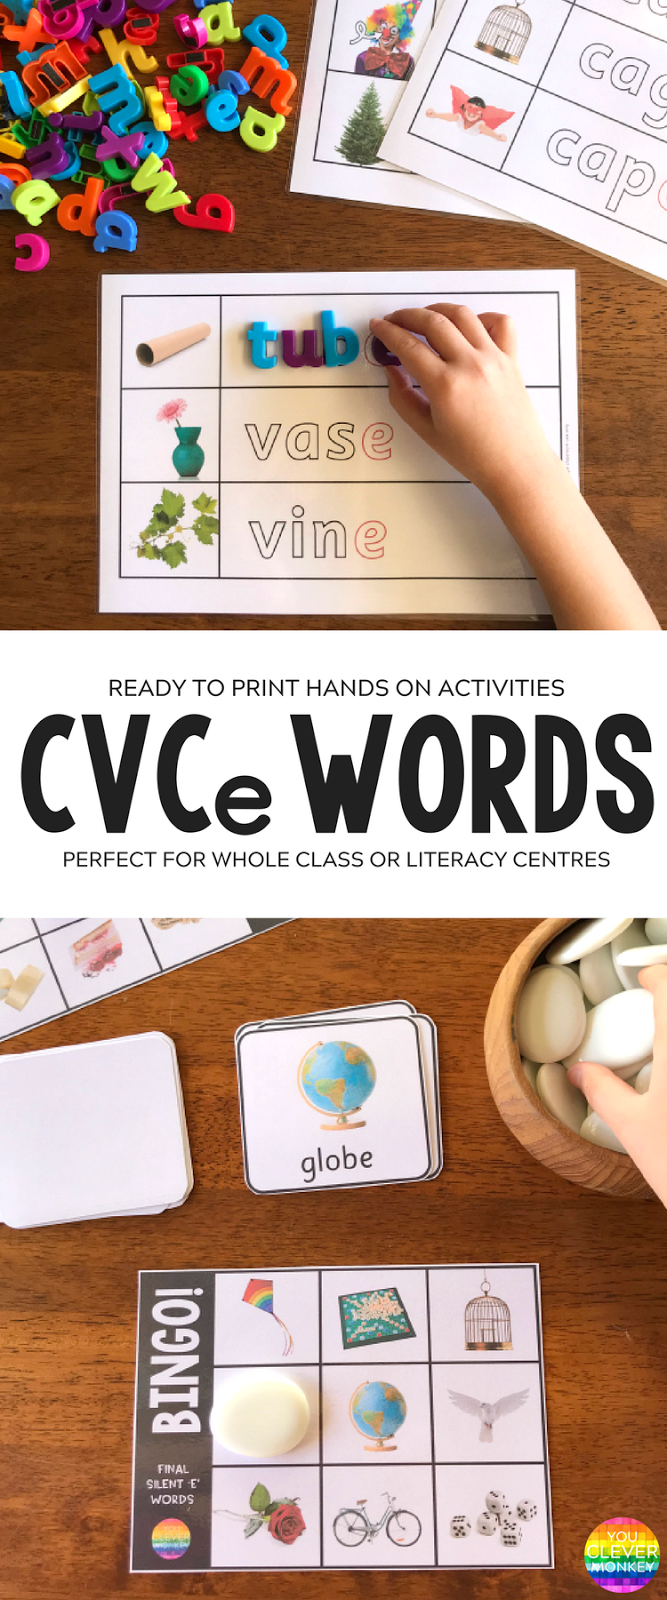 Teaching CVCe Words - helping young children to read and spell those tricky final silent 'e' words | you clever monkey